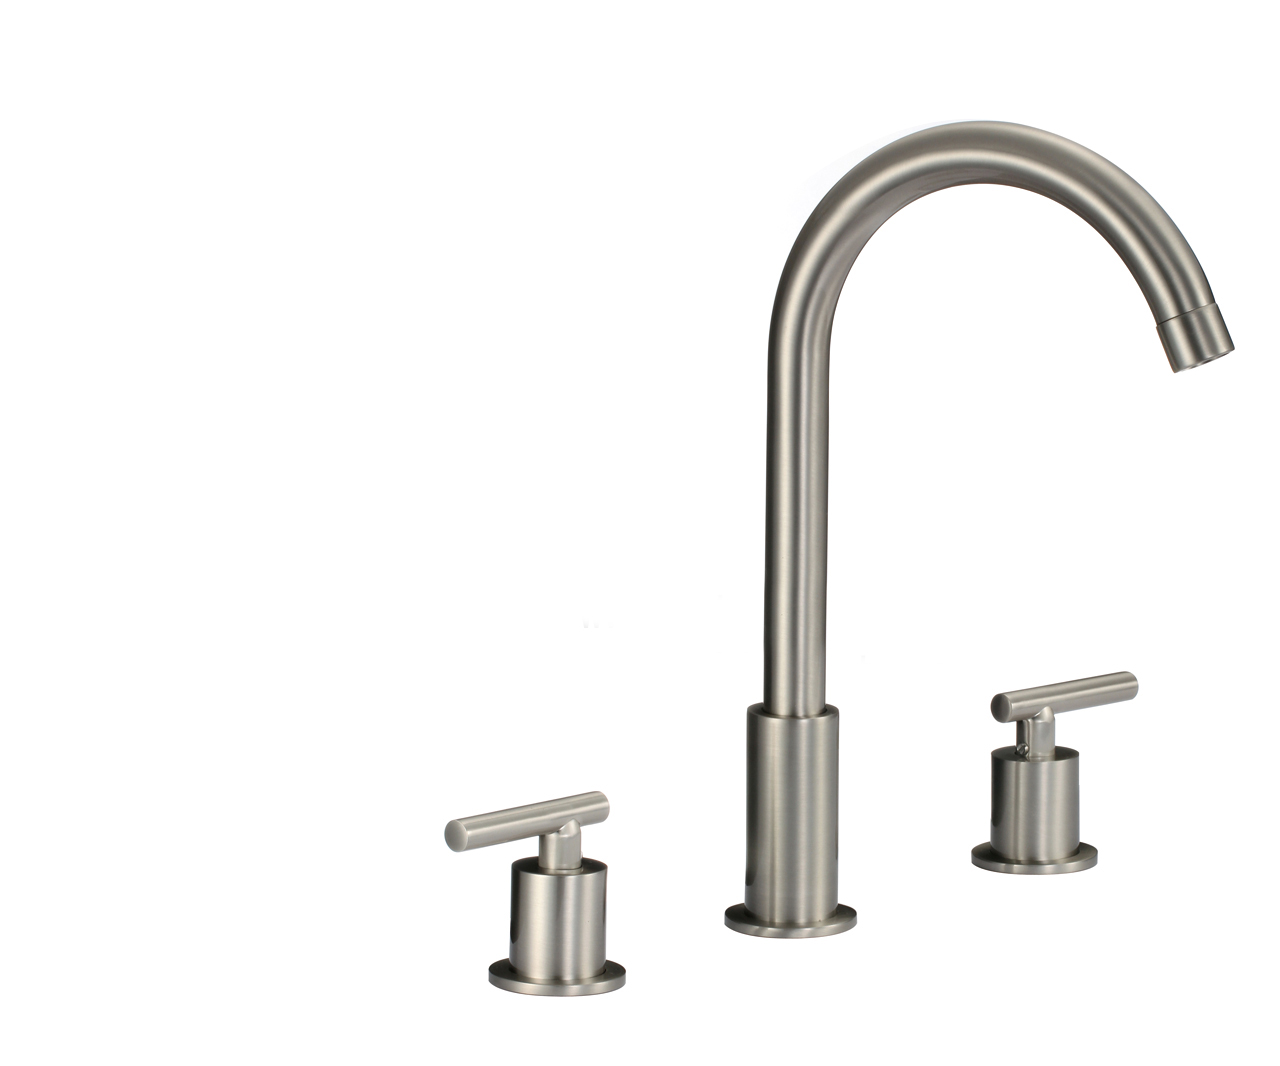 Shop Cannes Dual Handle Solid Brass Bathroom Sink Faucet At Bathselect